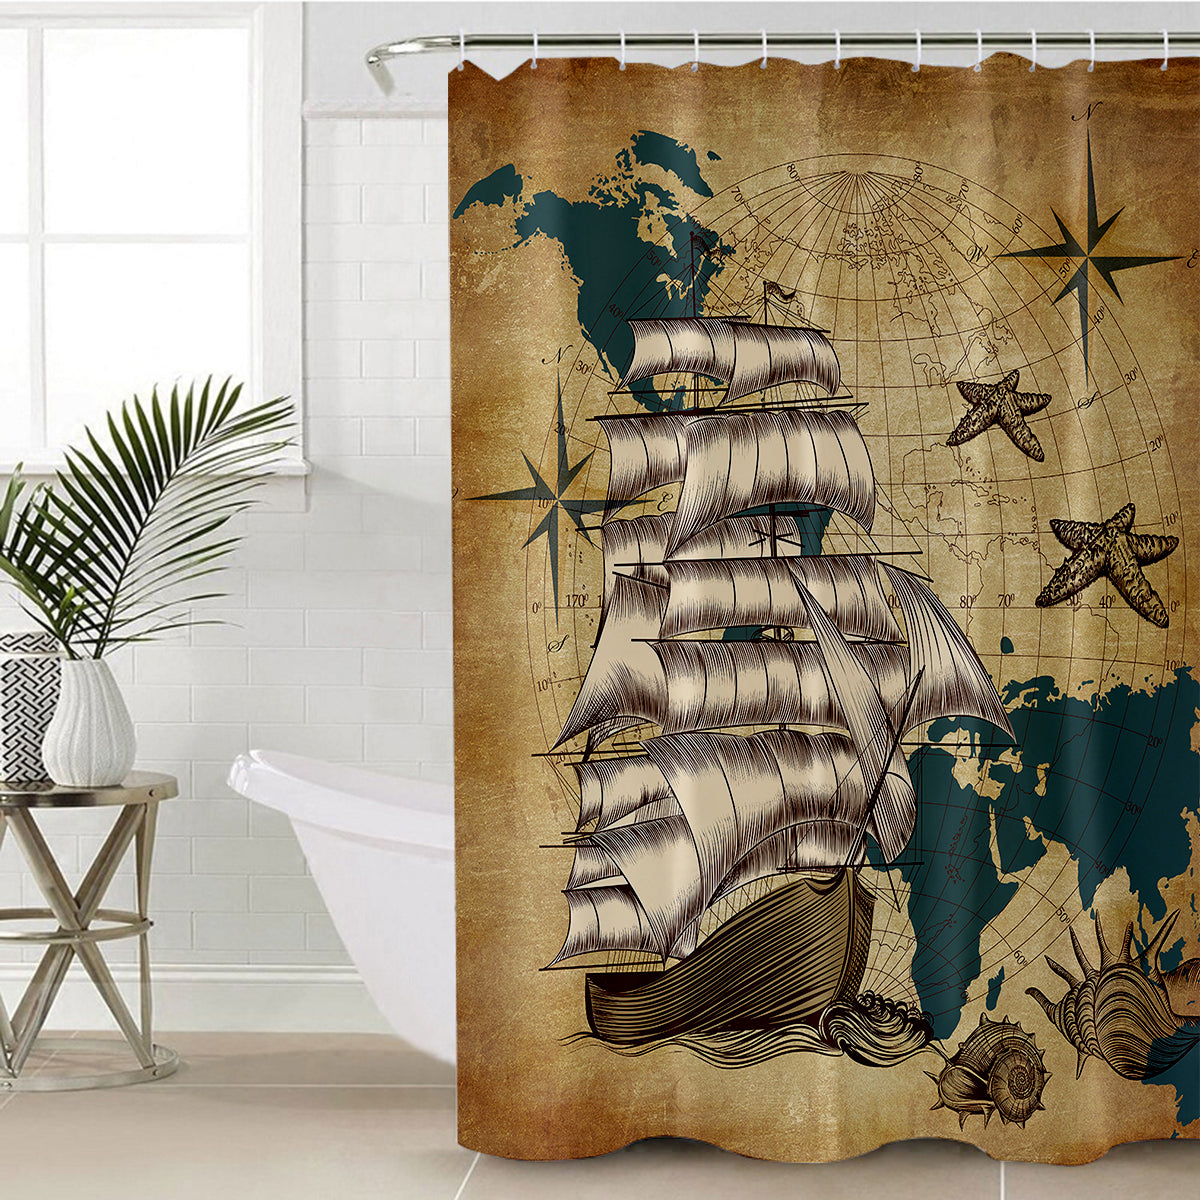 Ship Ahoy Shower Curtain